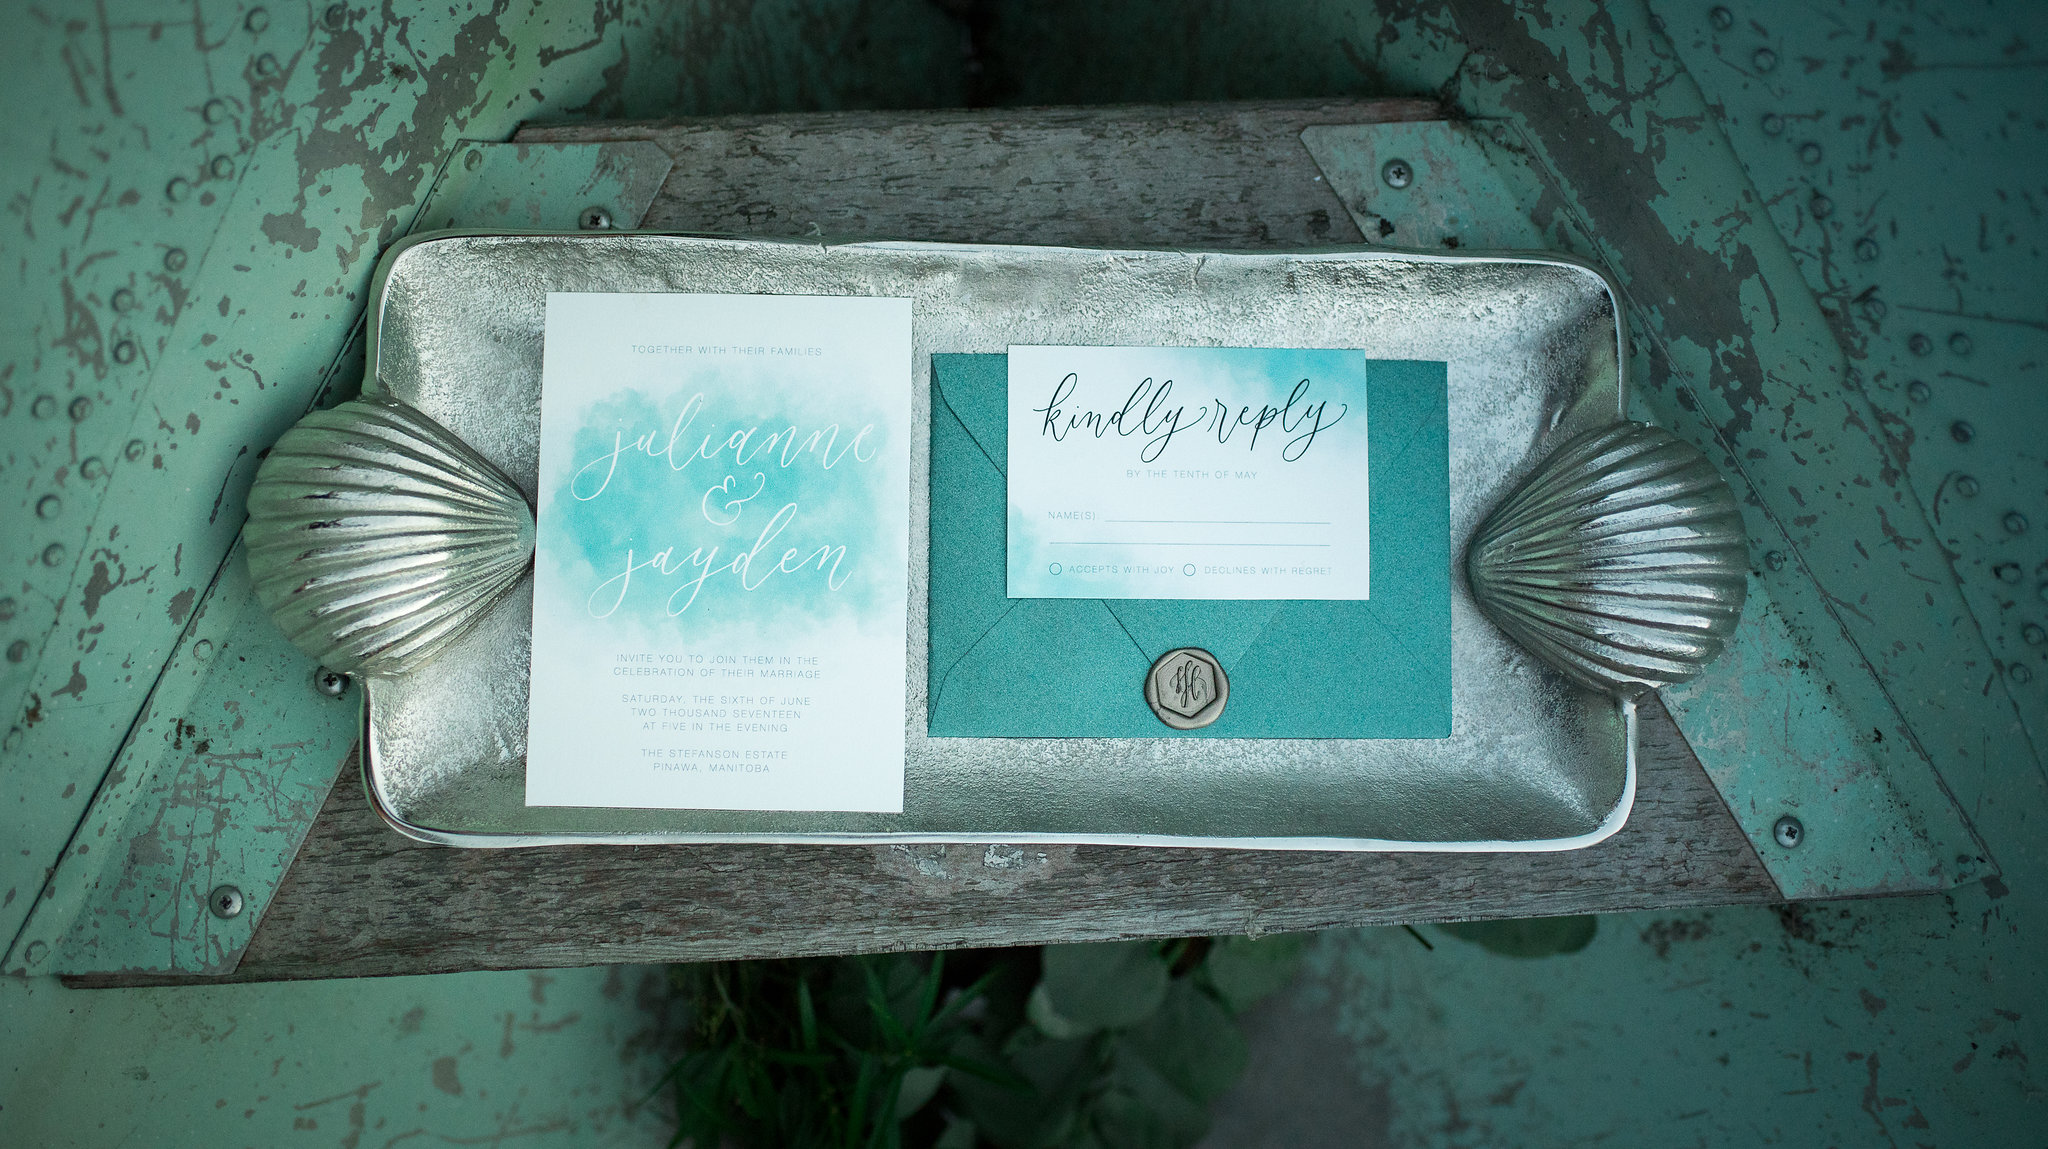 Mermaid Inspired Wedding Styled Shoot - Calligraphy and Stationery by Jennifer Bianca Calligraphy